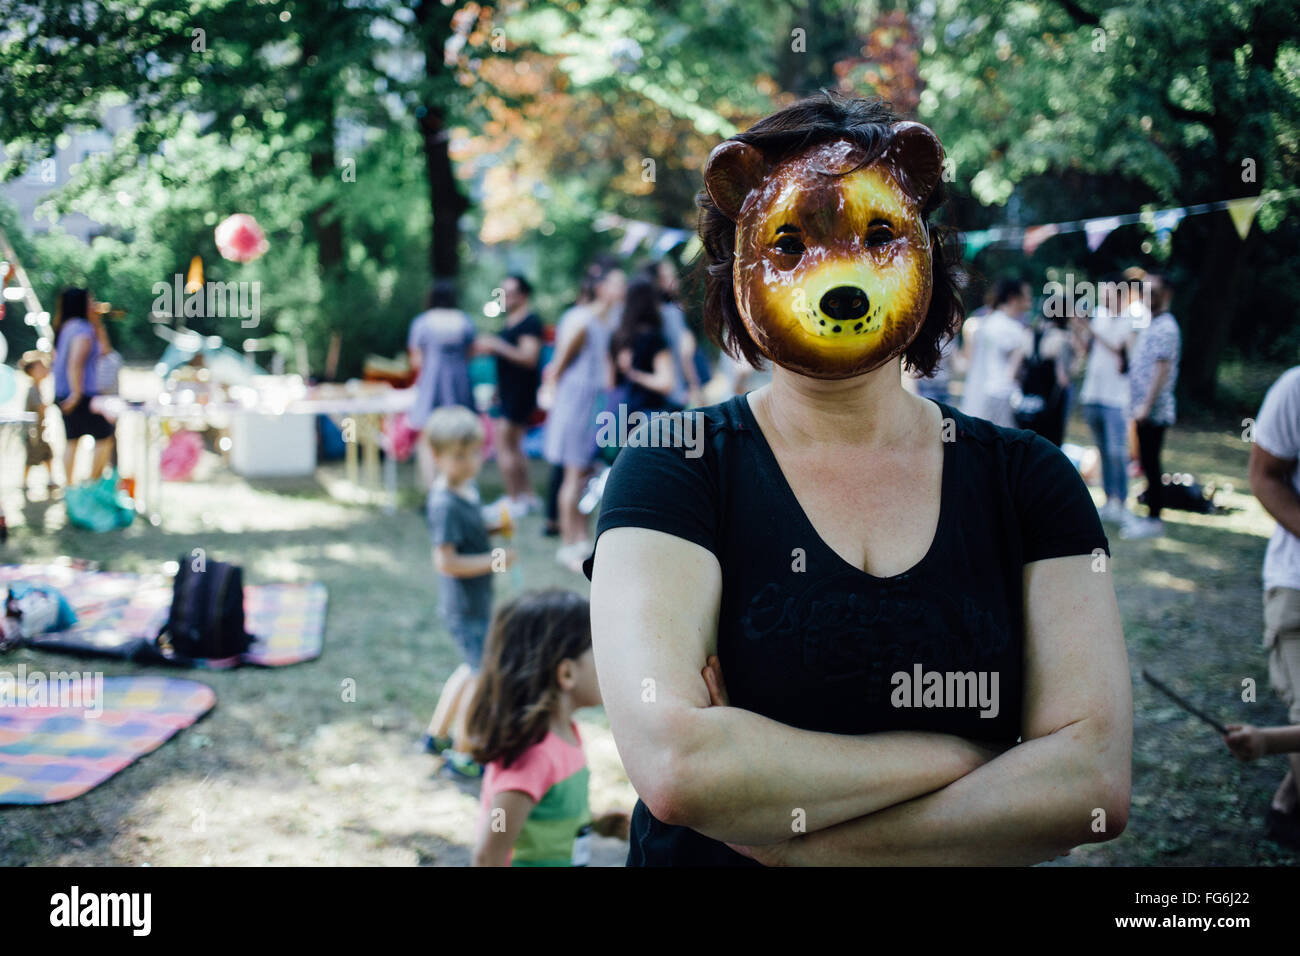 Portrait Of Woman Wearing Tiger Mask In Park - Stock Image